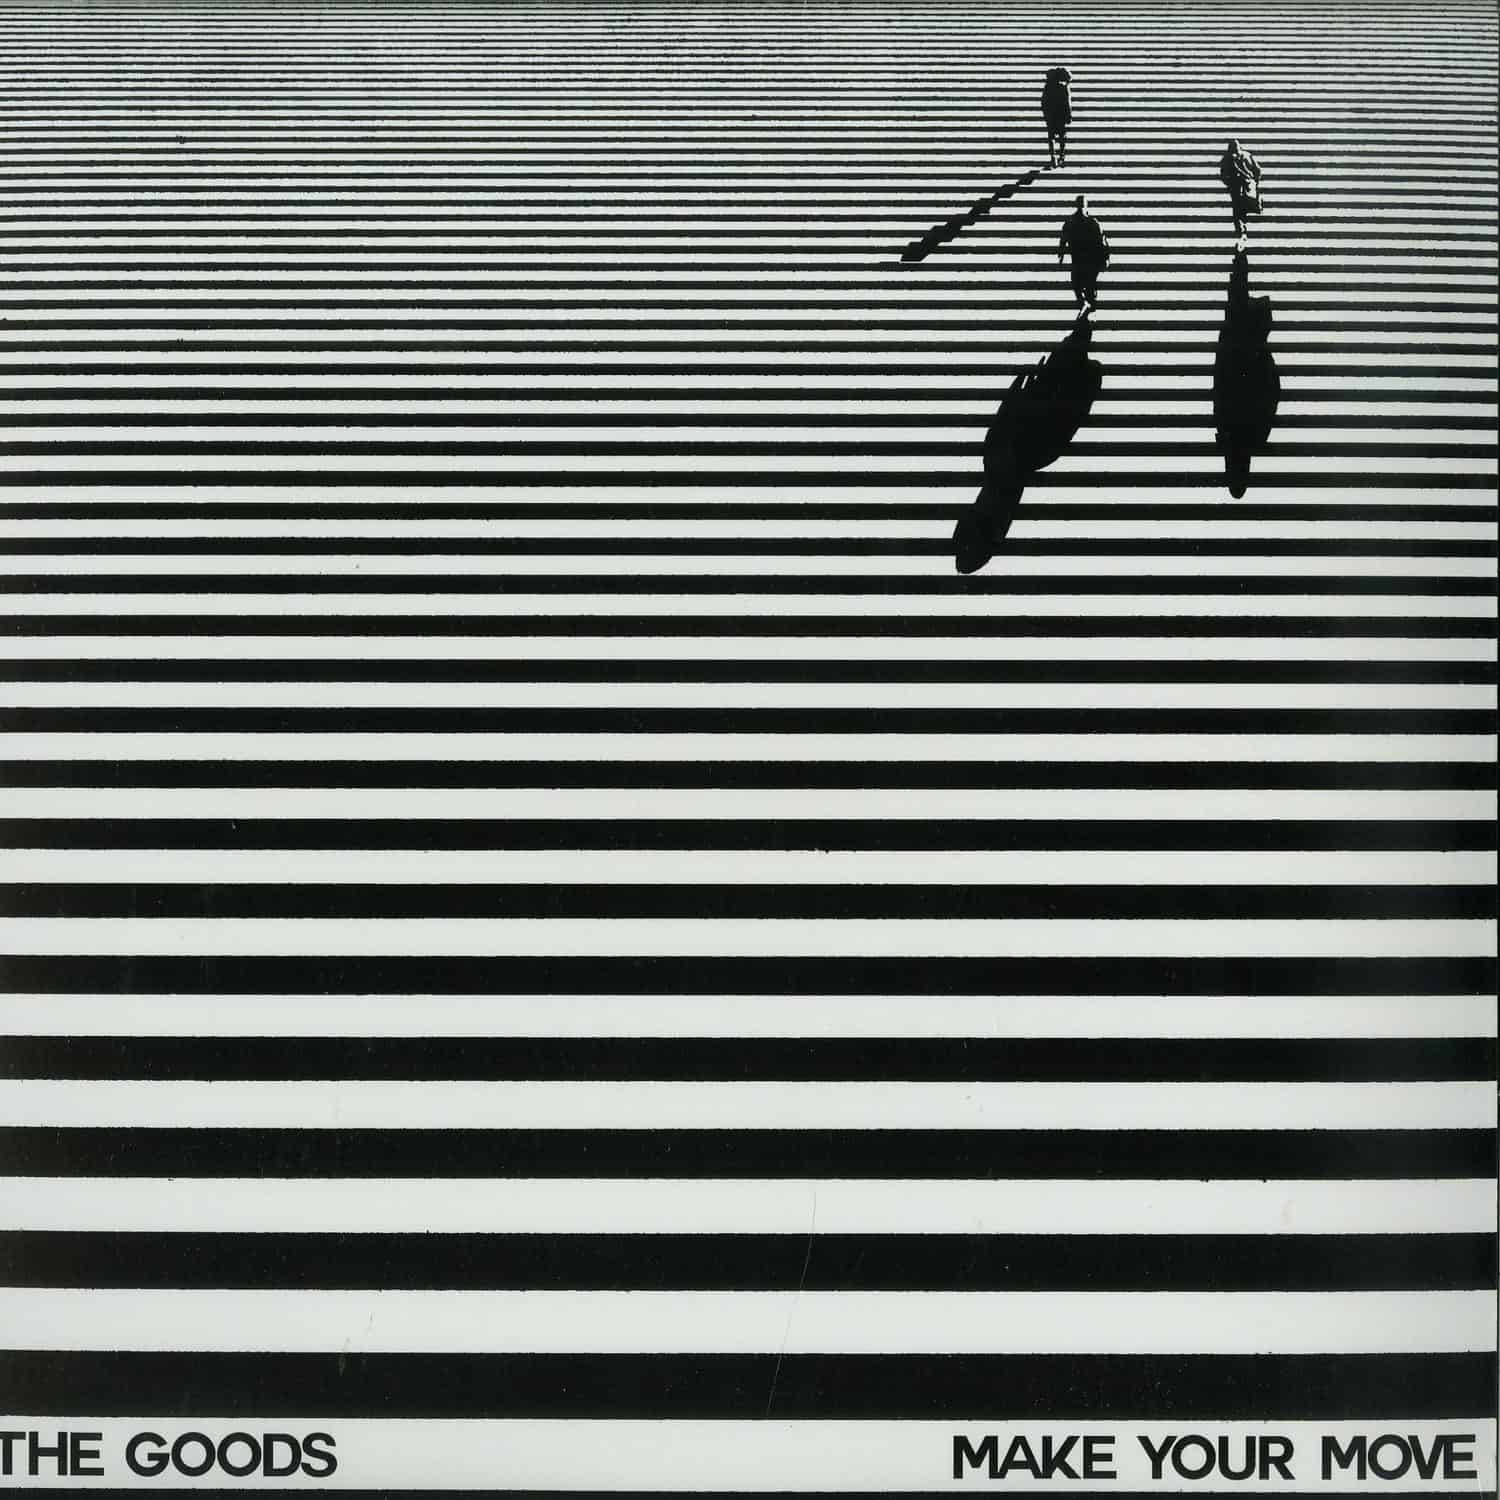 The Goods - MAKE YOUR MOVE